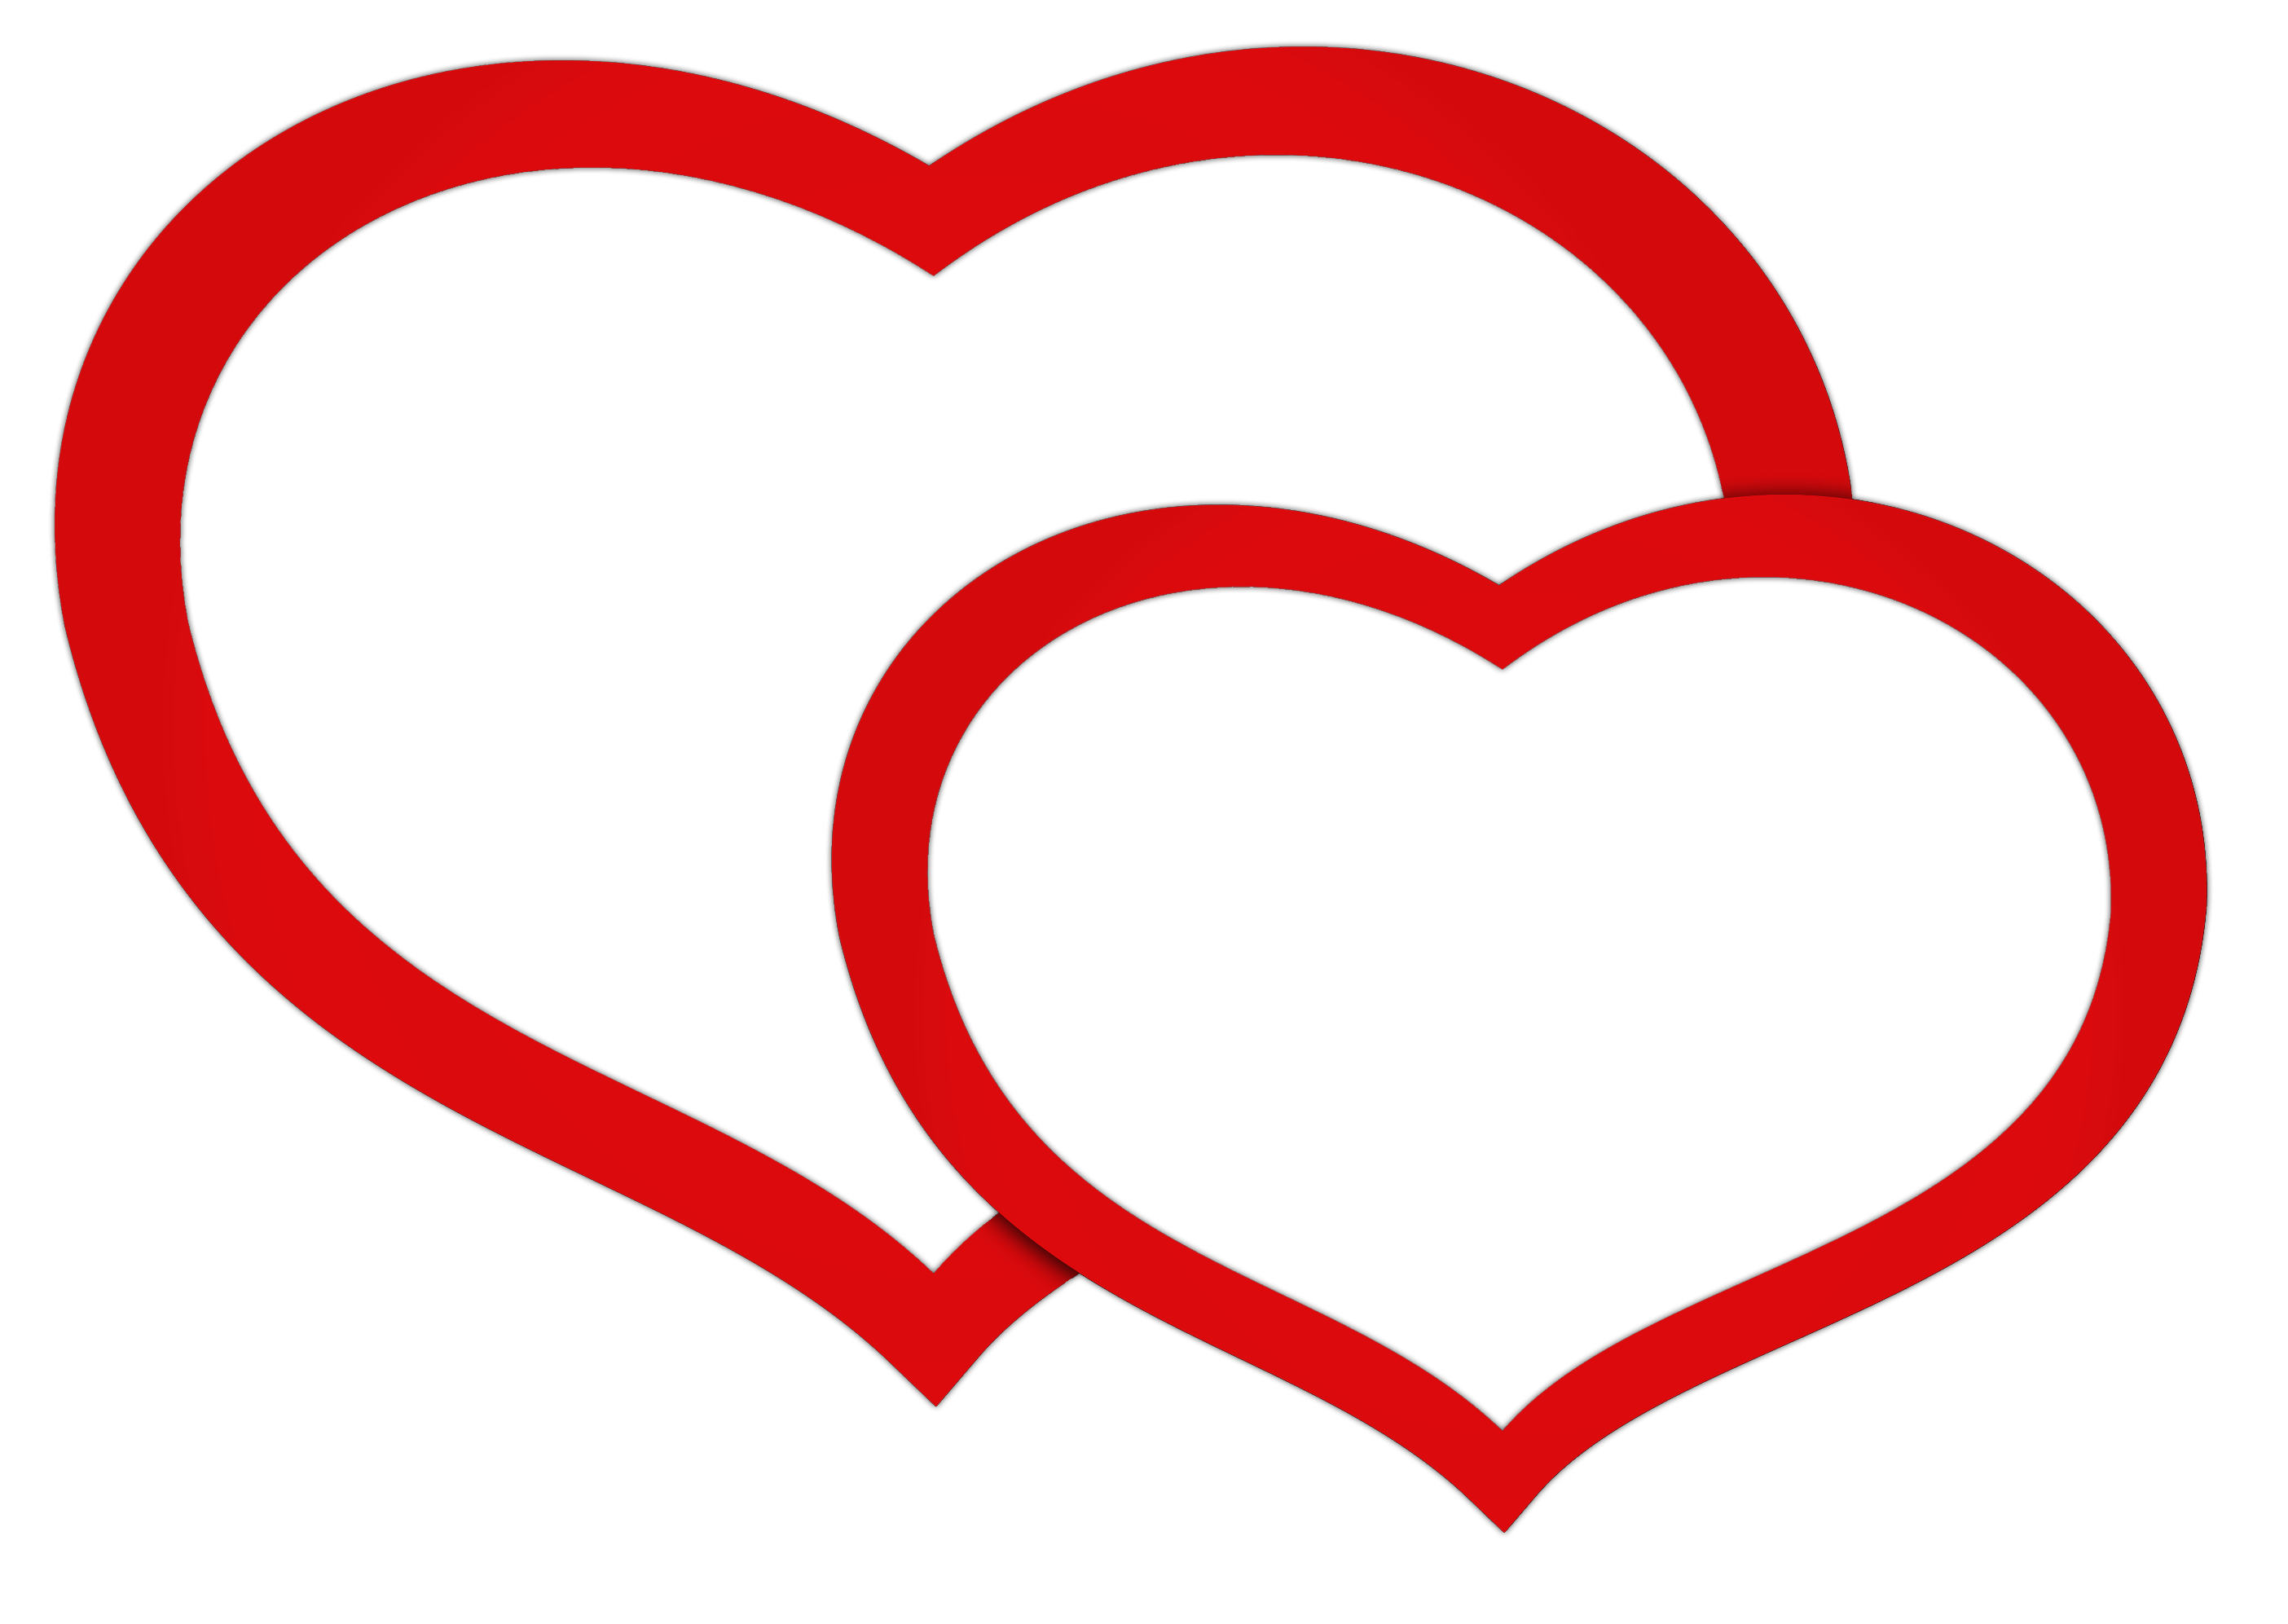 Hearts clipart double heart Picture Red Hearts Transparent Hearts